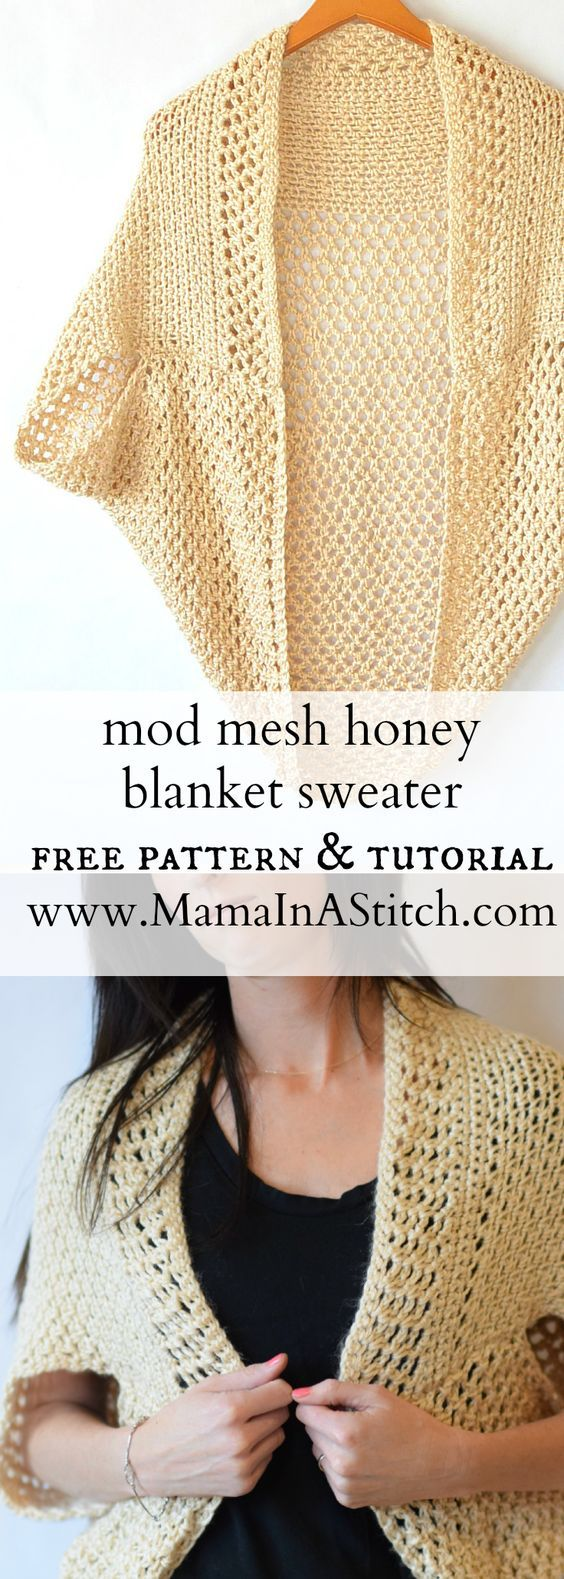 Mod mesh honey blanket sweater a super easy crochet pattern for mod mesh honey blanket sweater a super easy crochet pattern for a beautiful cardigan sweater it includes tutorials also via mamainastitch free bankloansurffo Choice Image